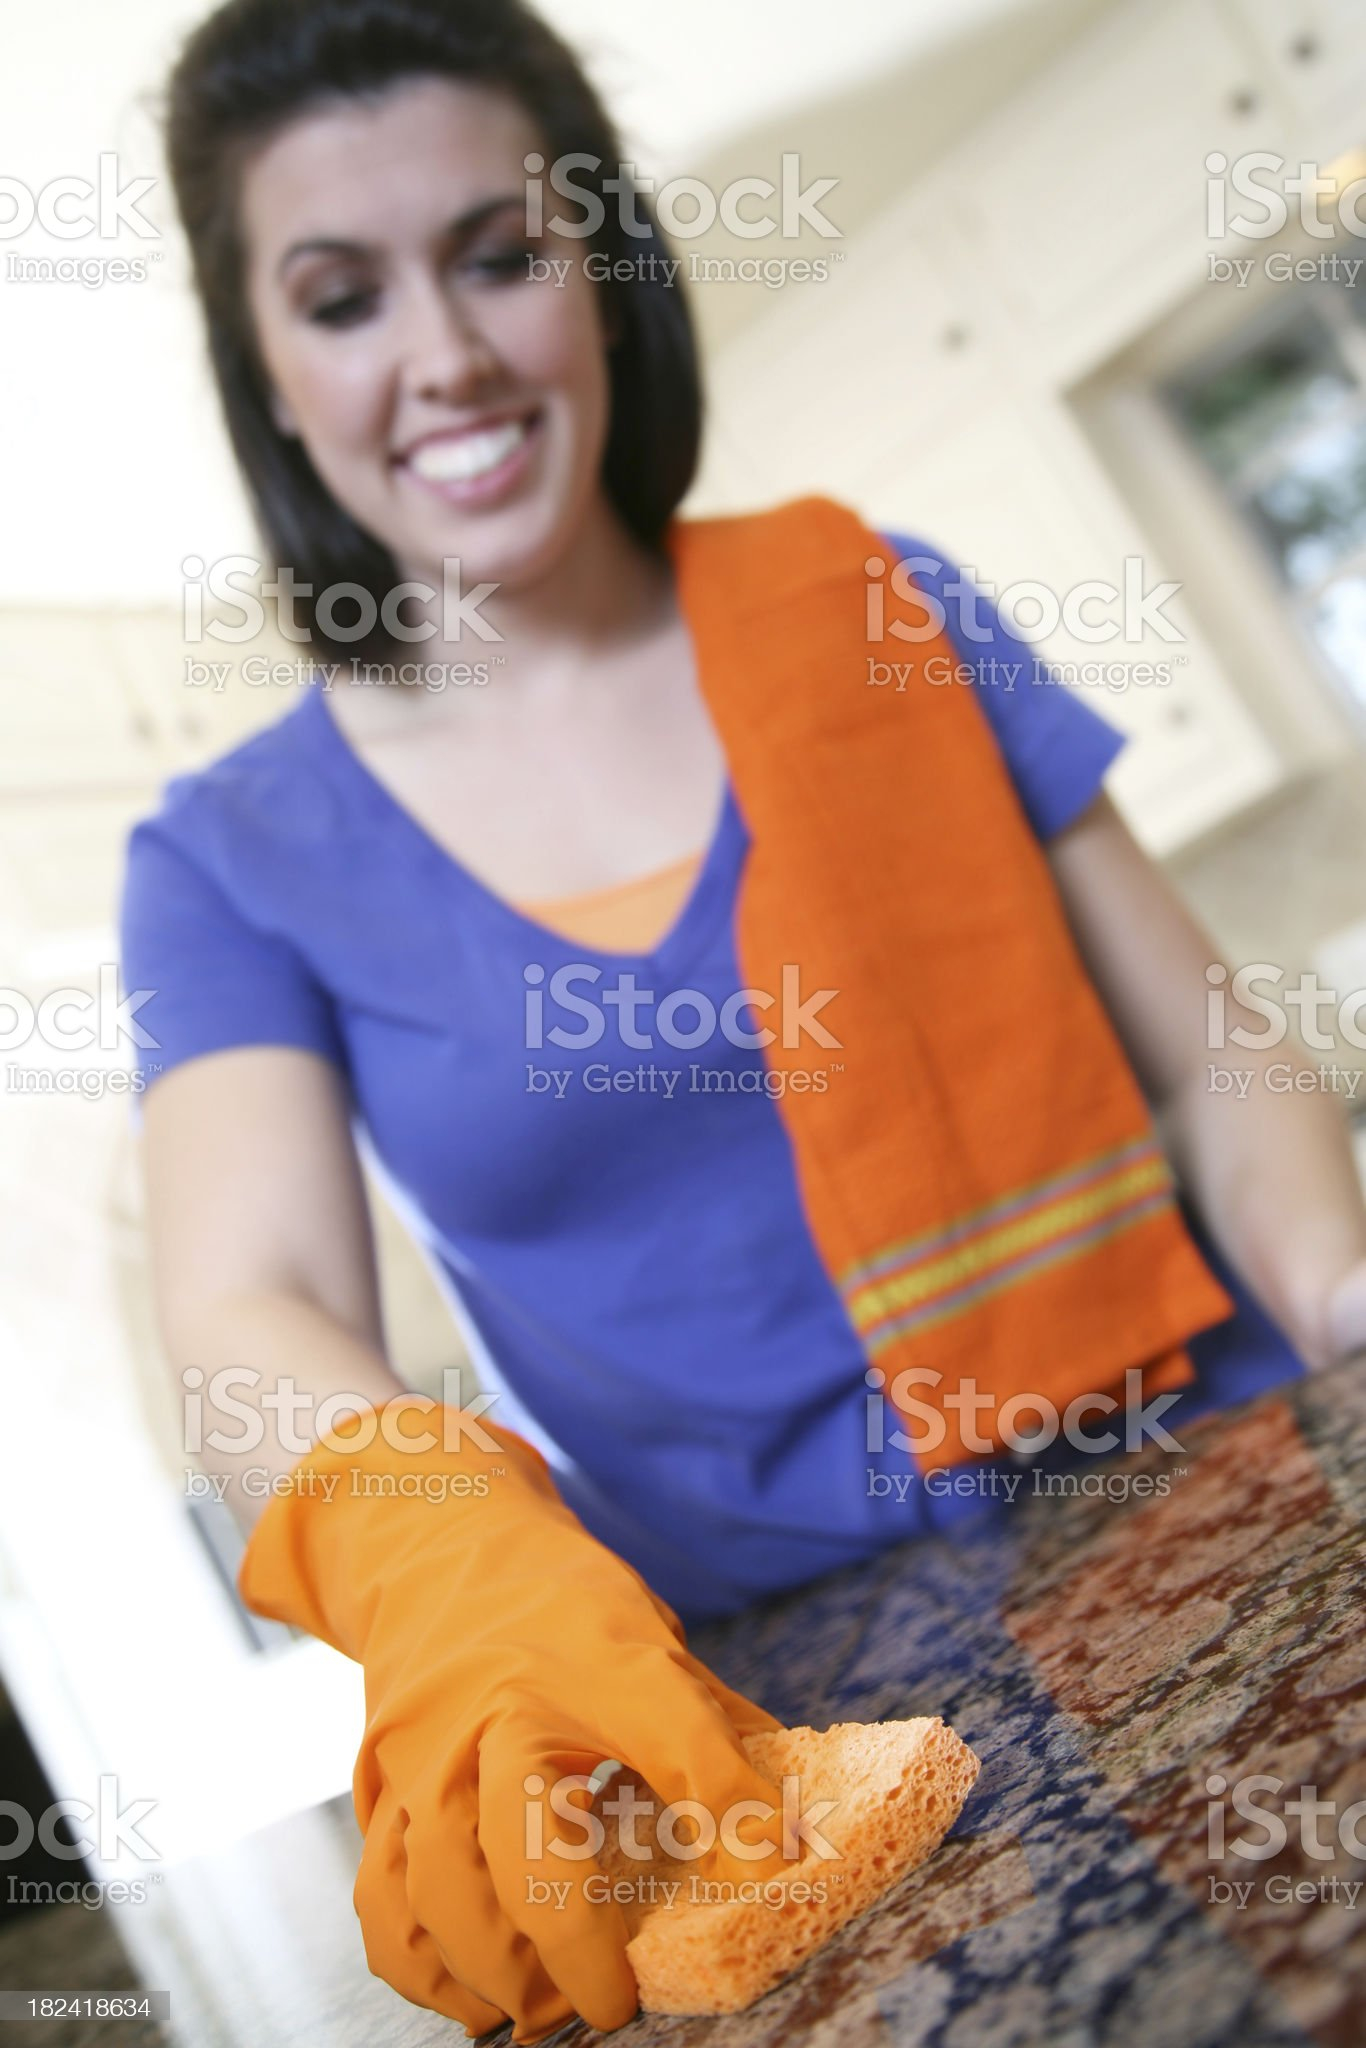 Young Woman Cleaning Her Kitchen Counter With Sponge royalty-free stock photo